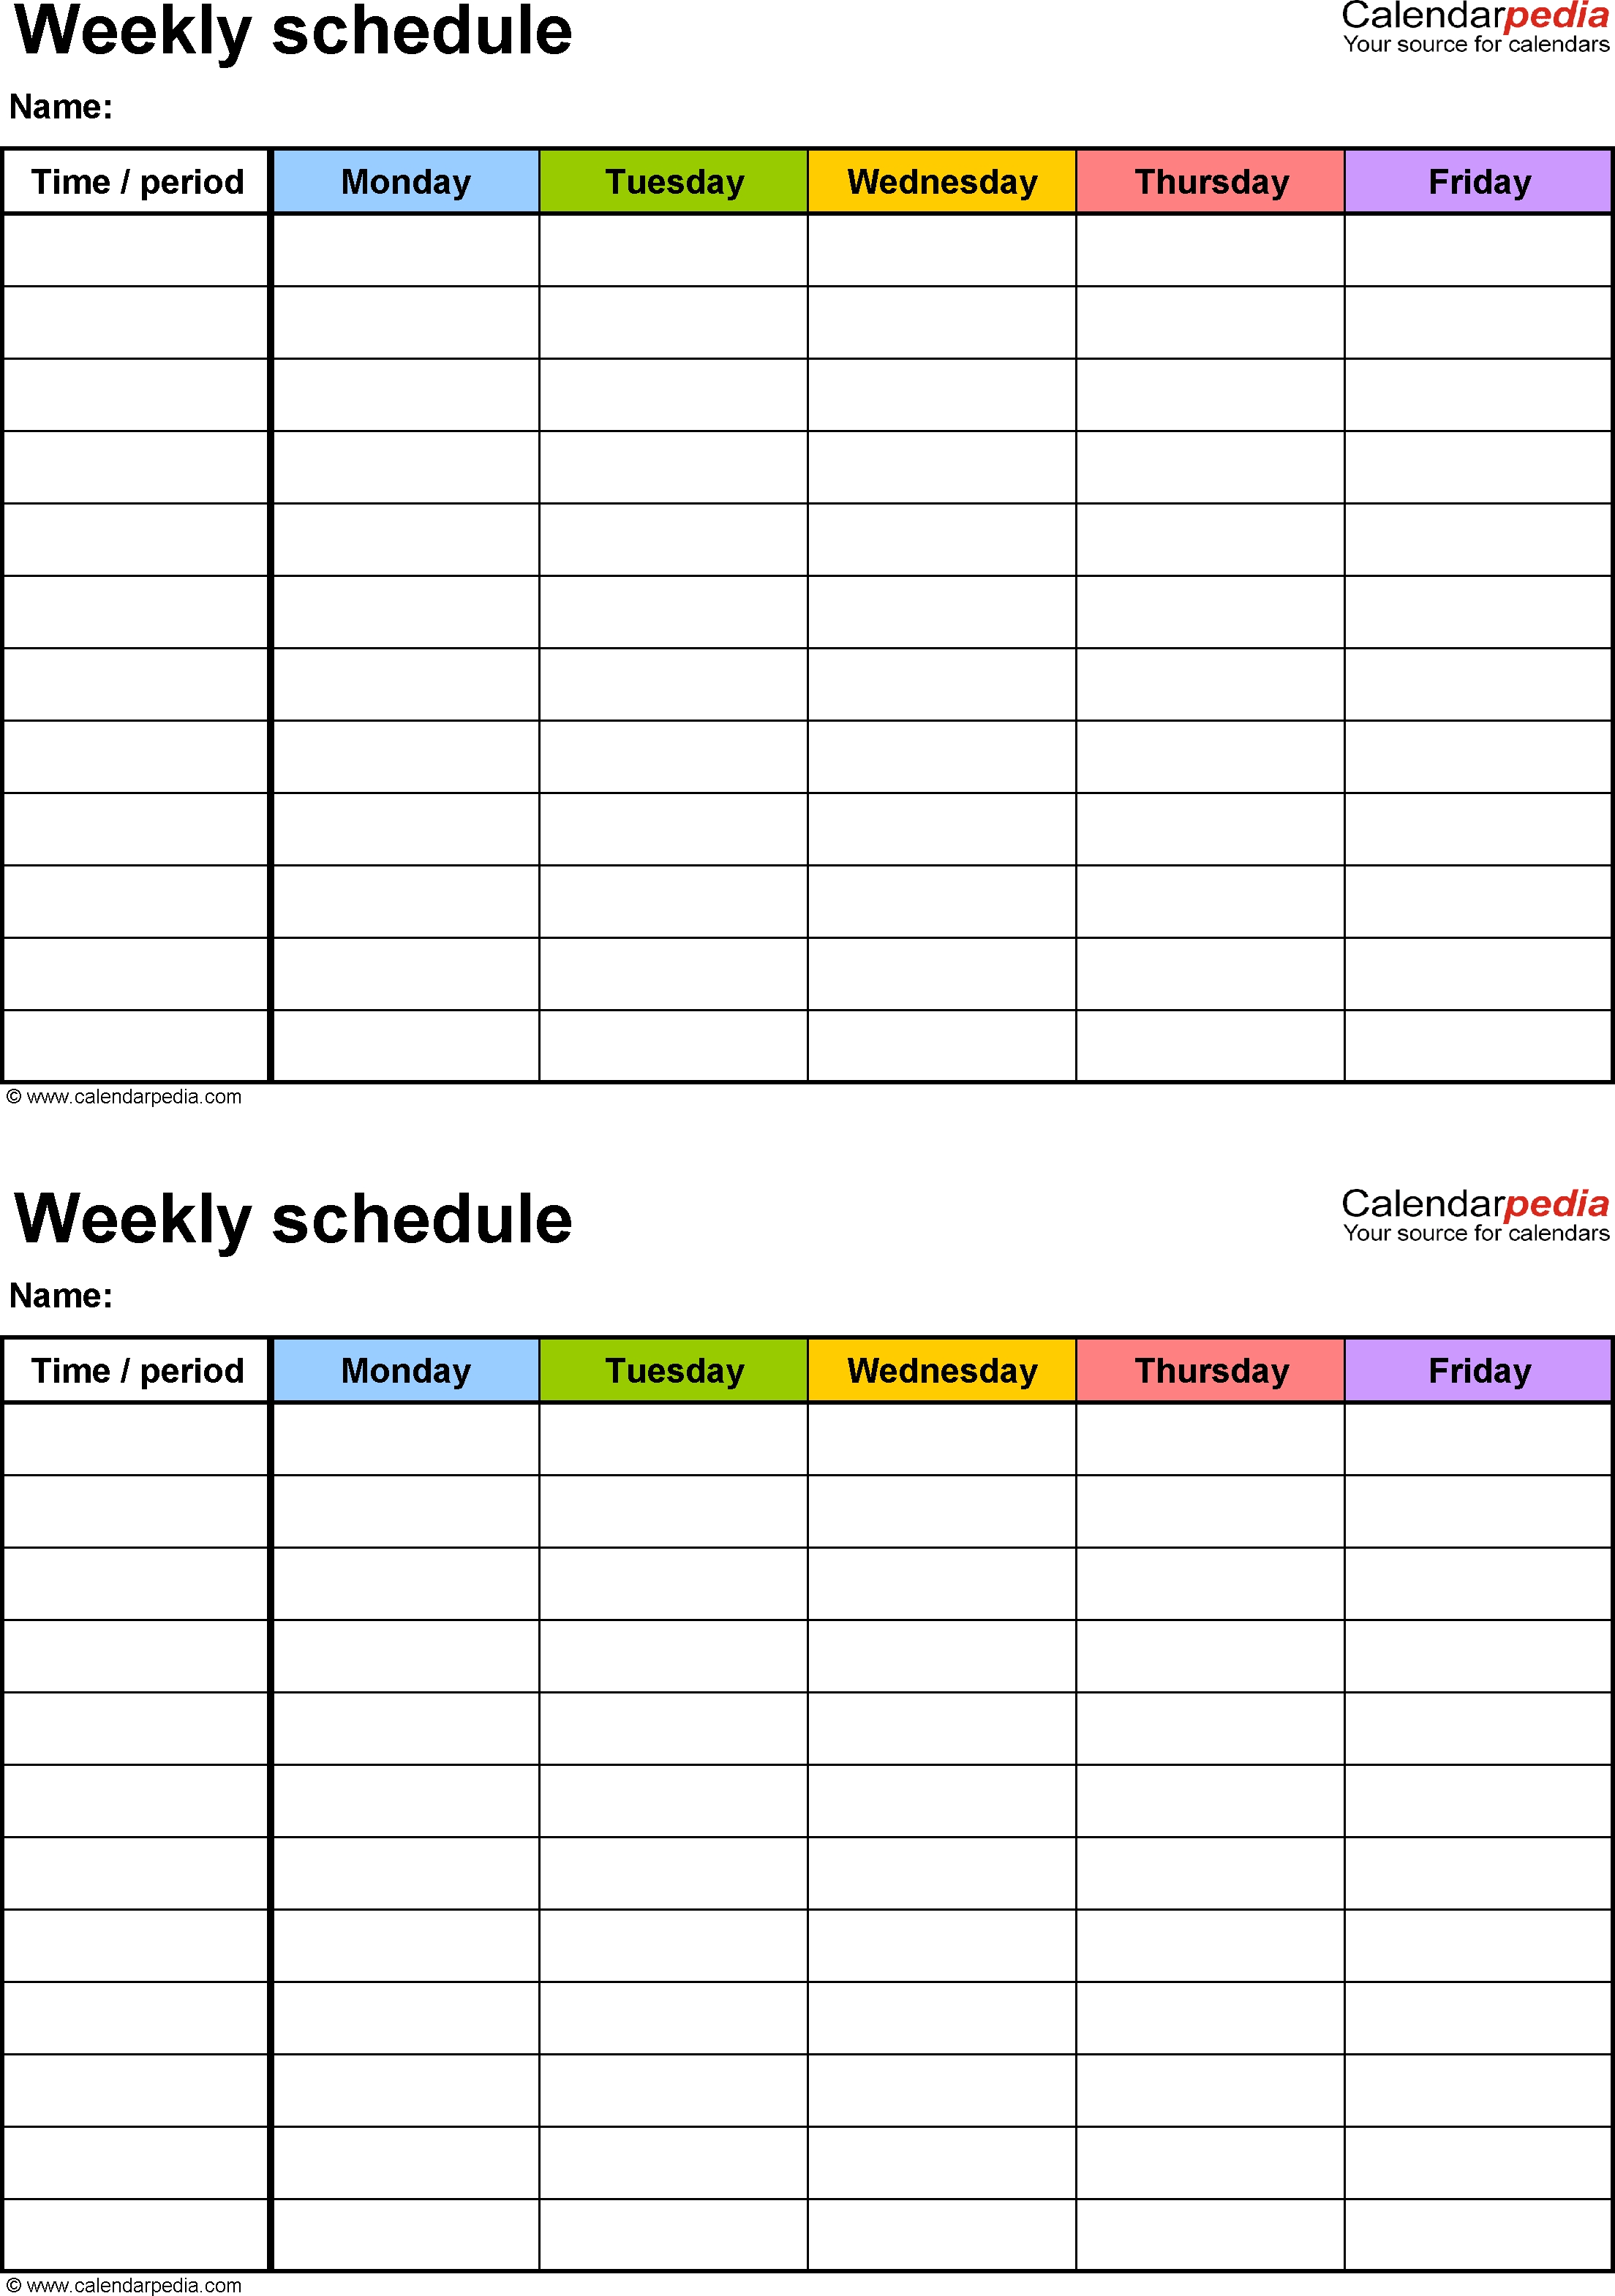 Free Weekly Schedule Templates For Pdf - 18 Templates 3 Week Calendar Template